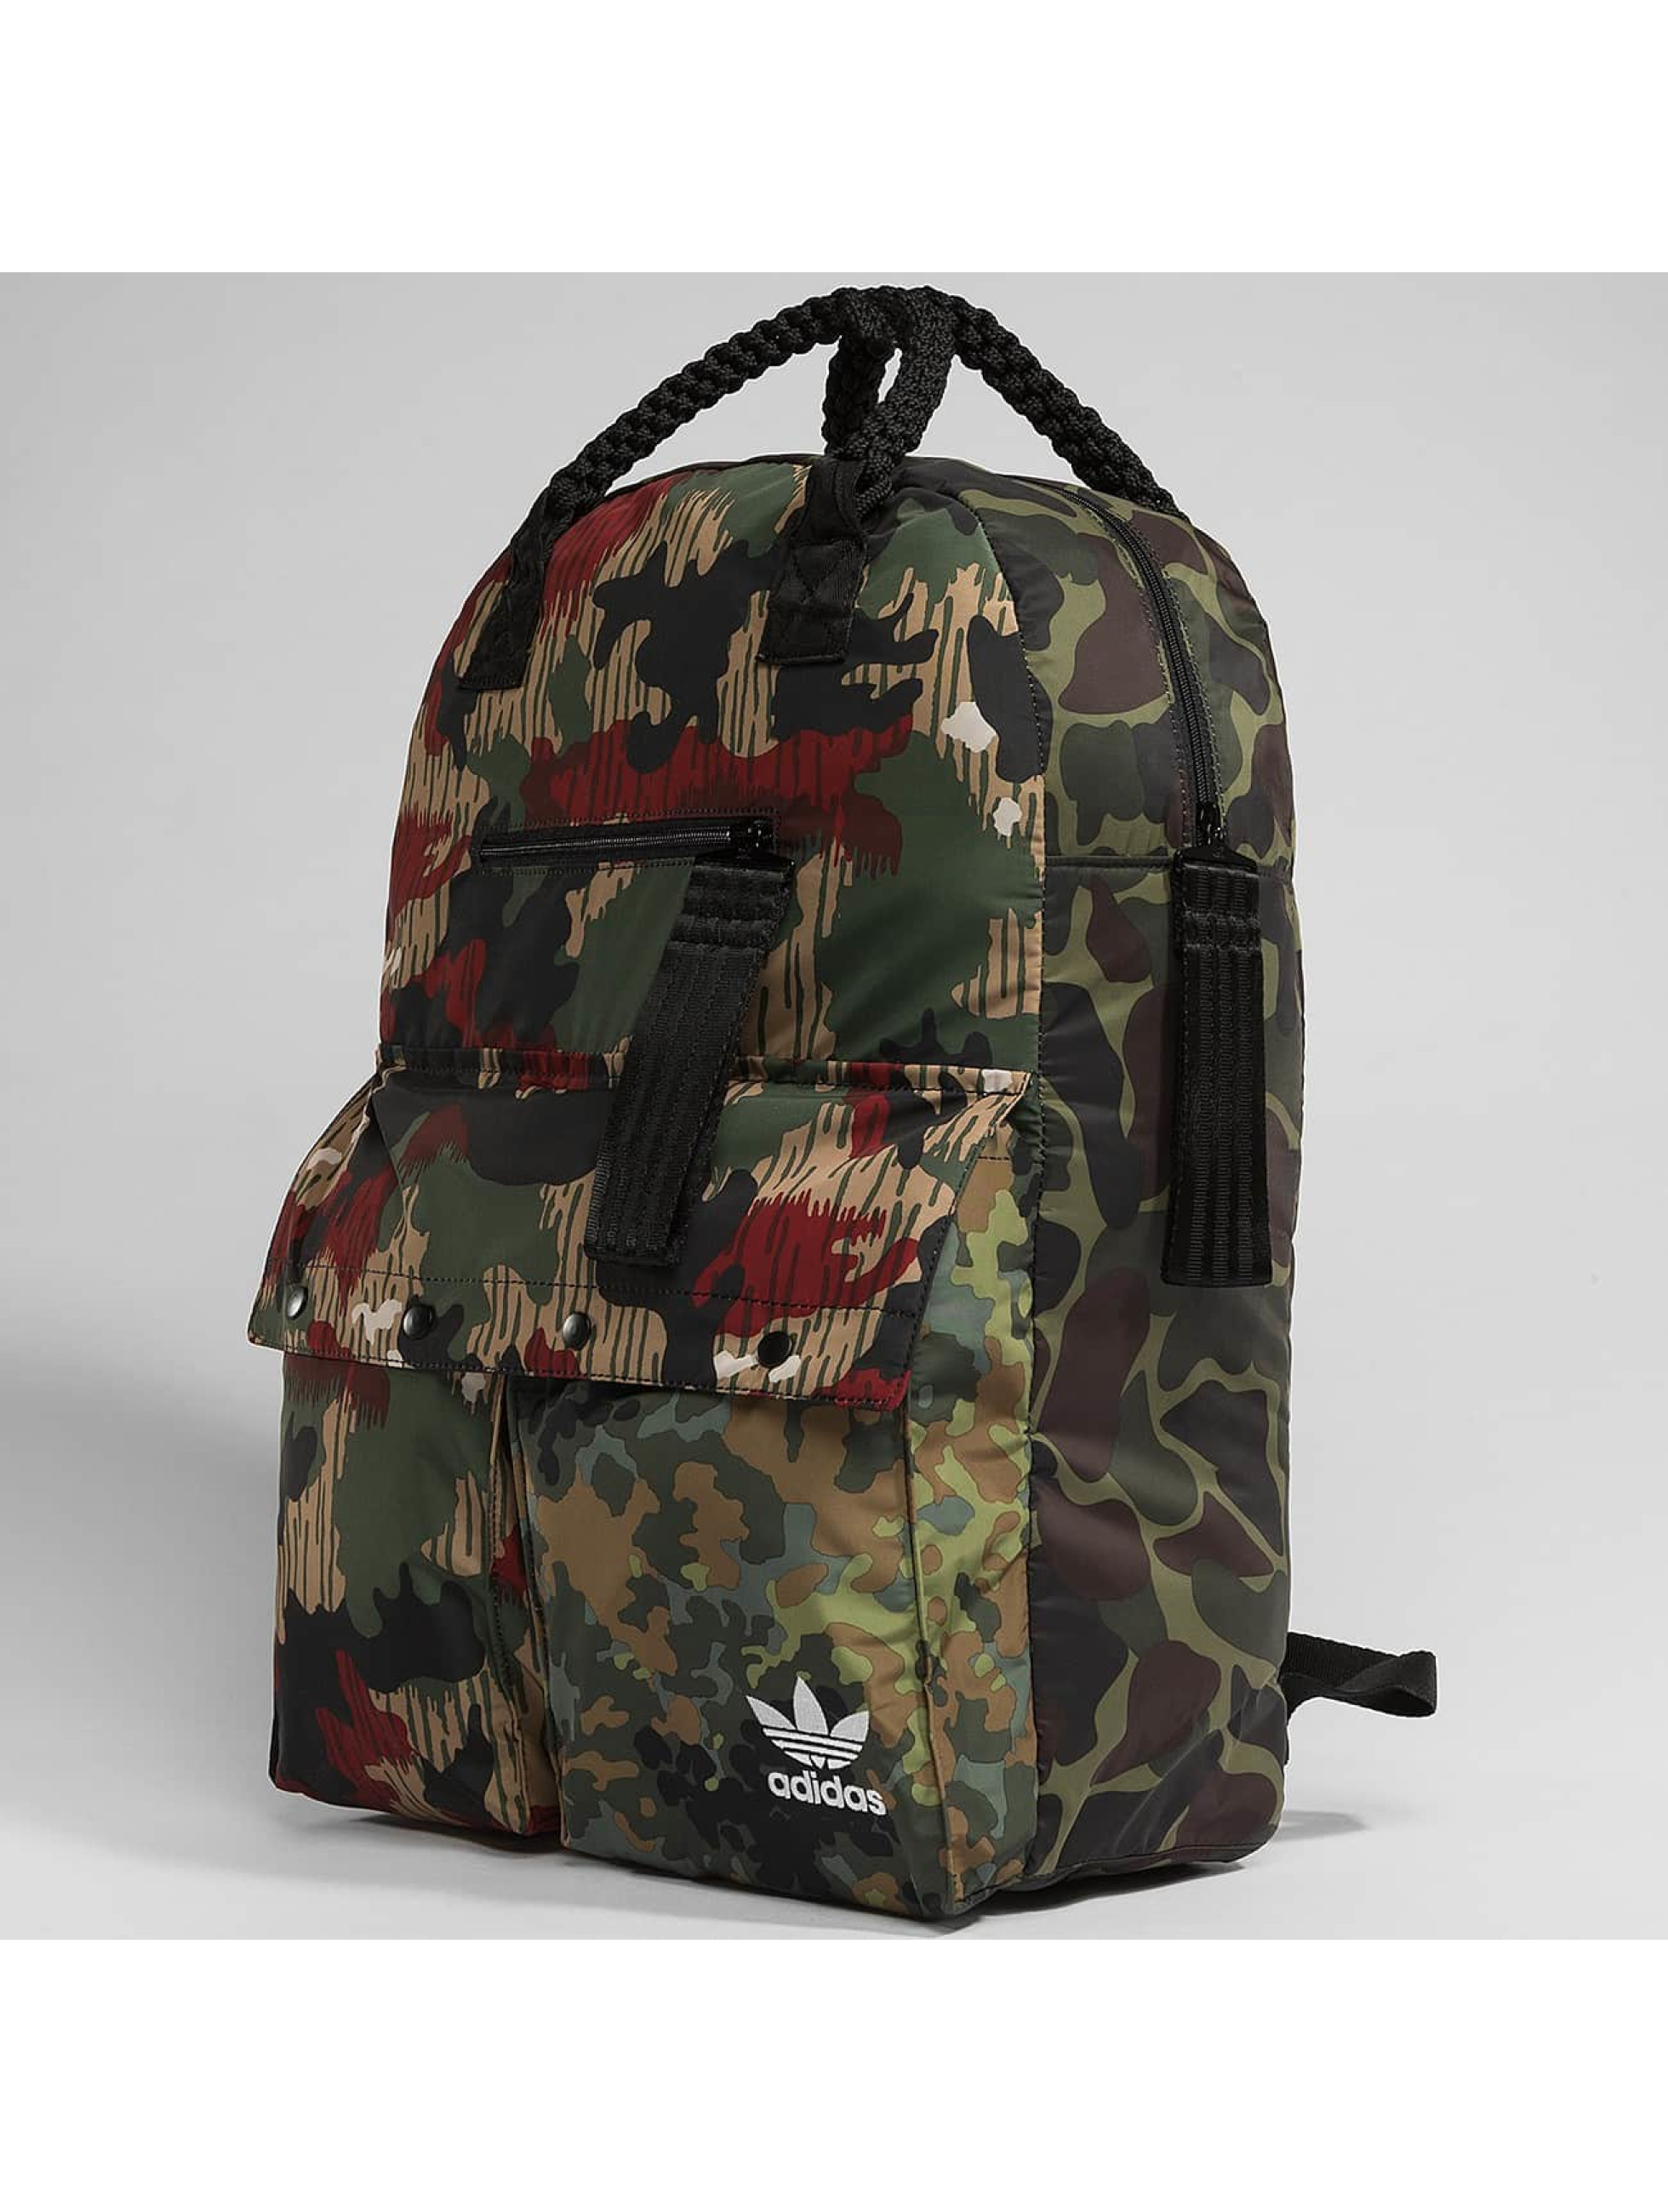 Adidas Outdoor Backpack Camouflage